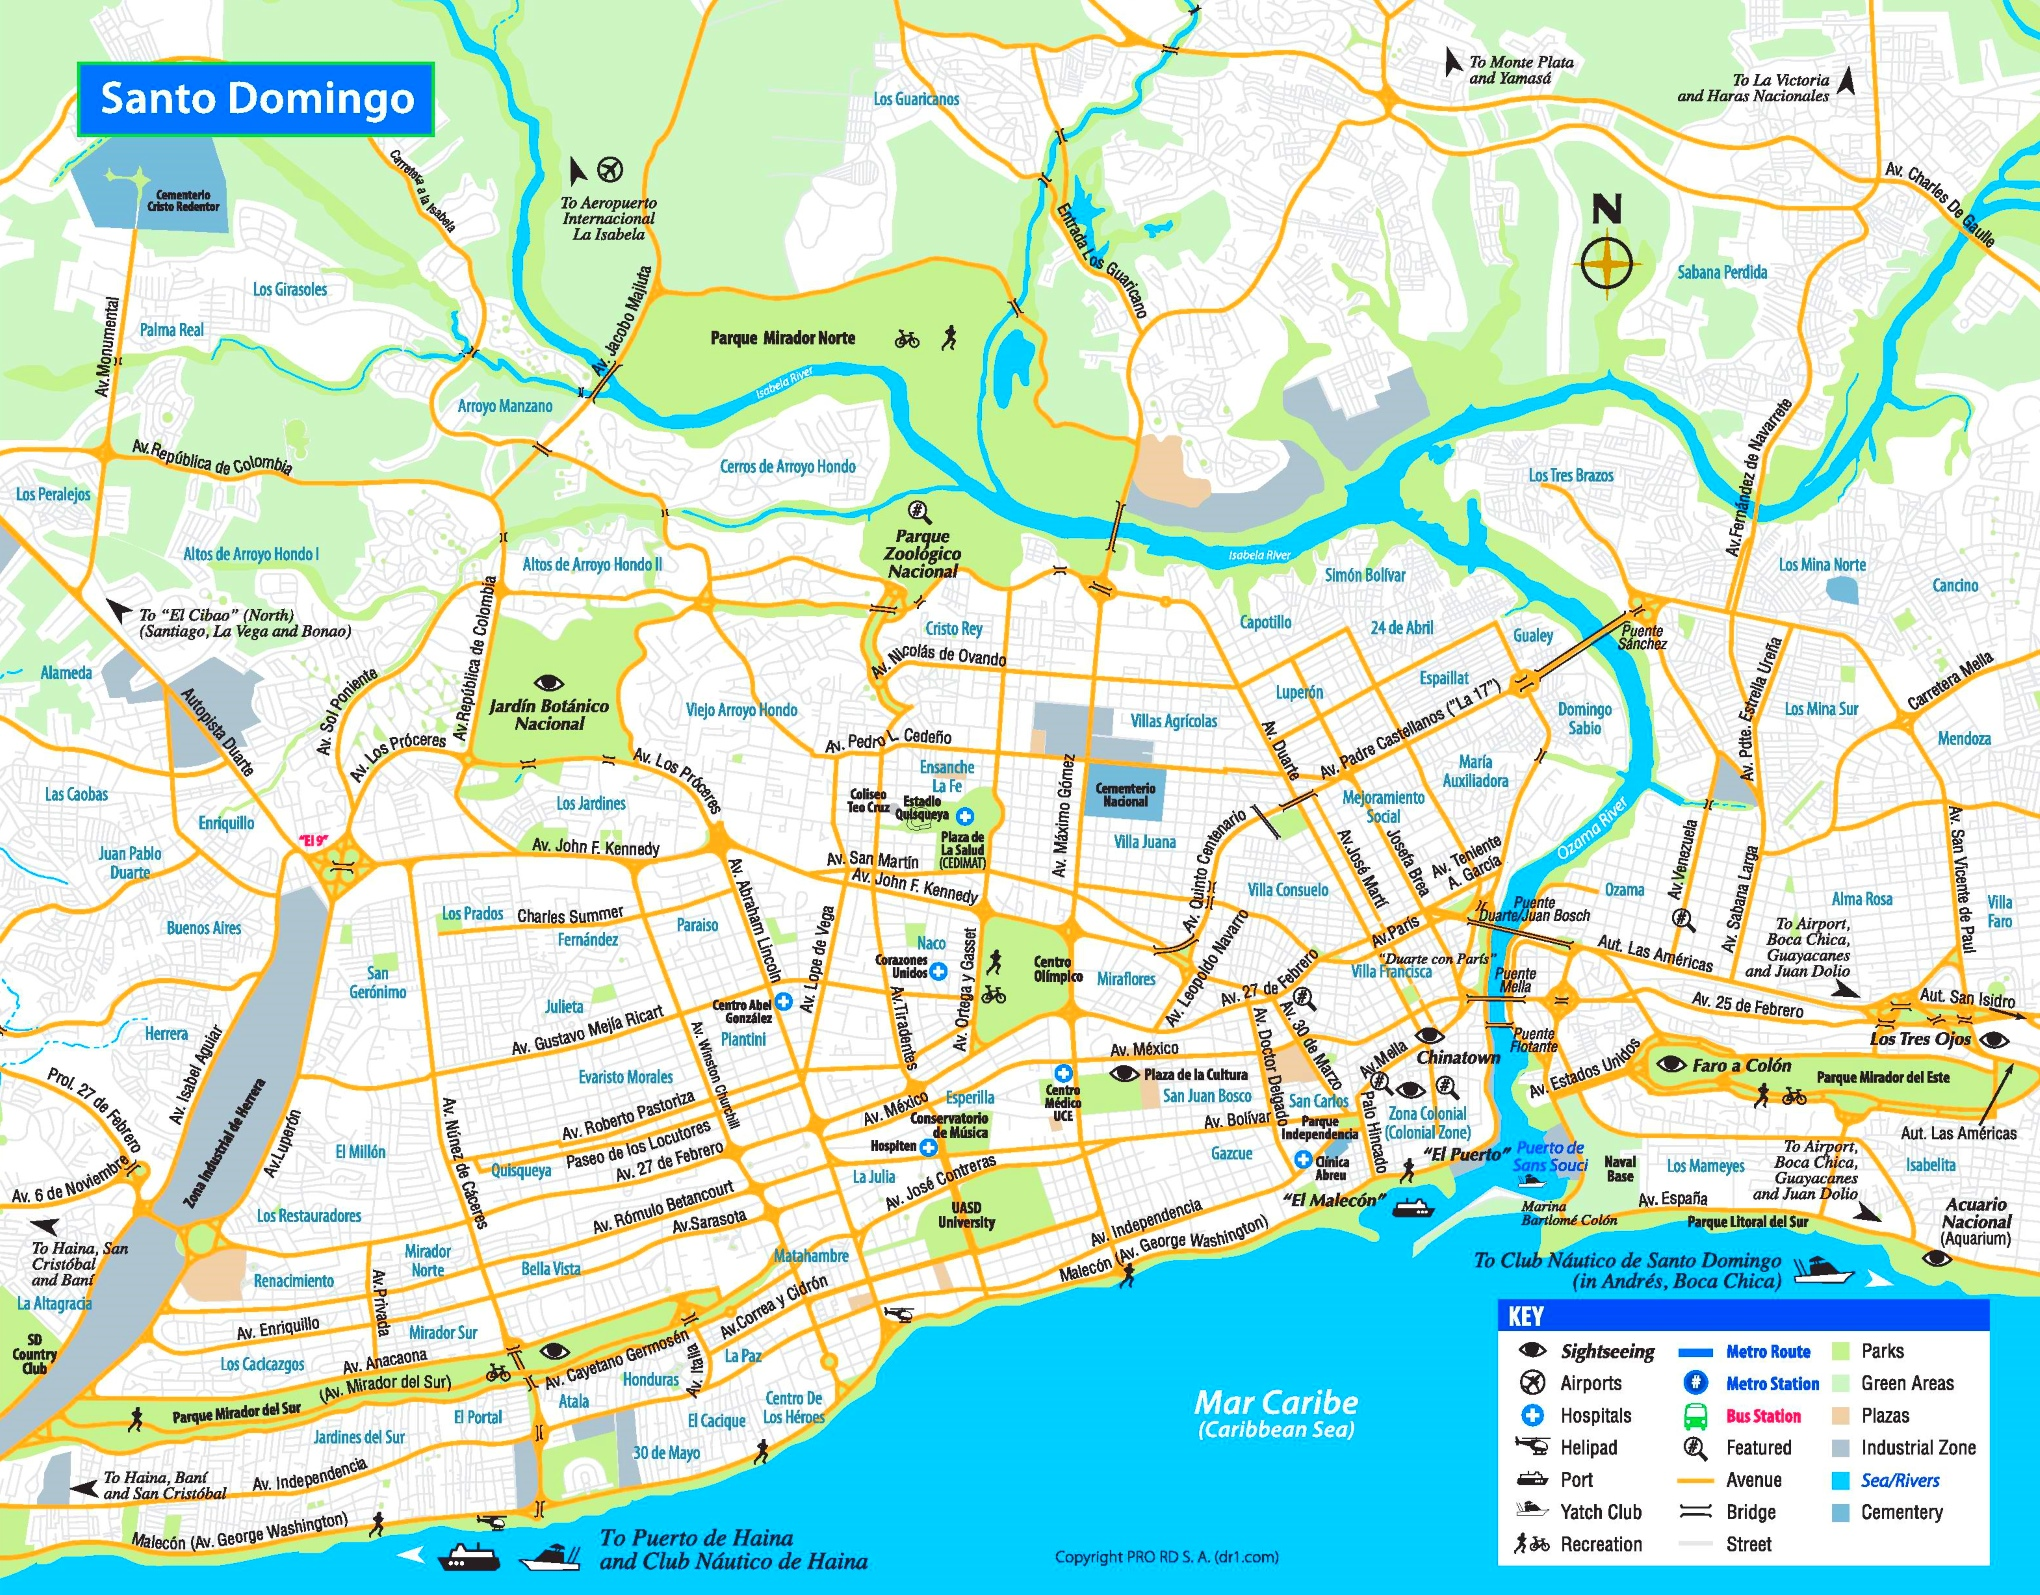 Santo Domingo tourist map